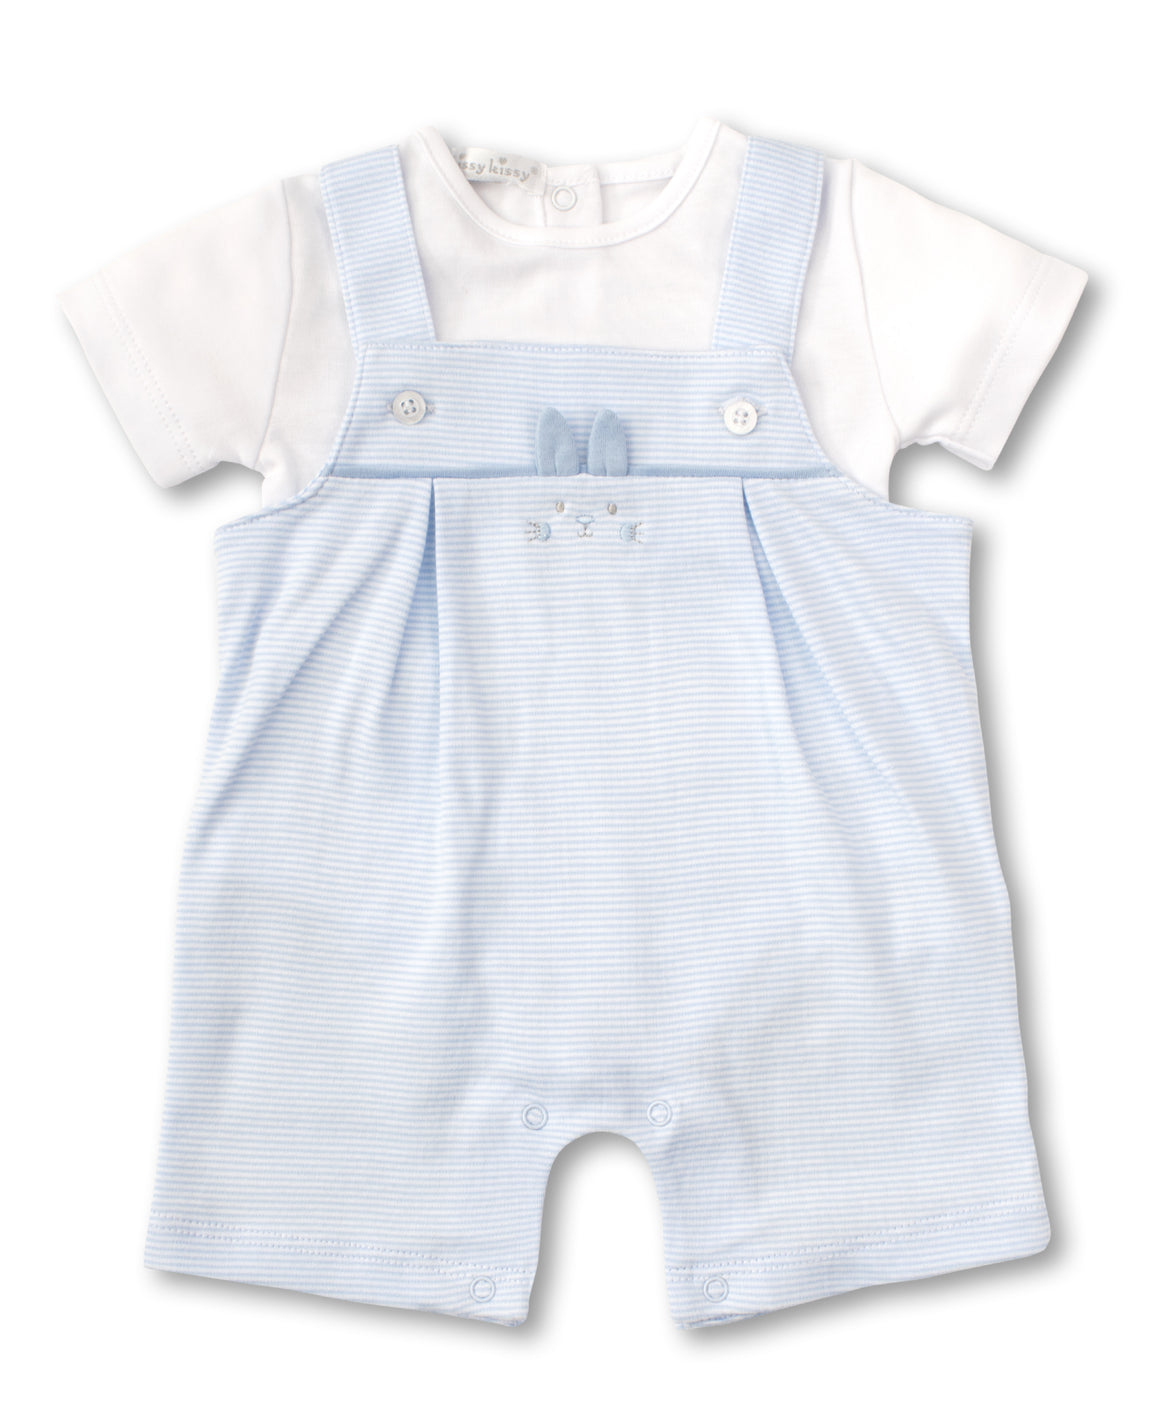 Kissy Kissy Short Overall Set